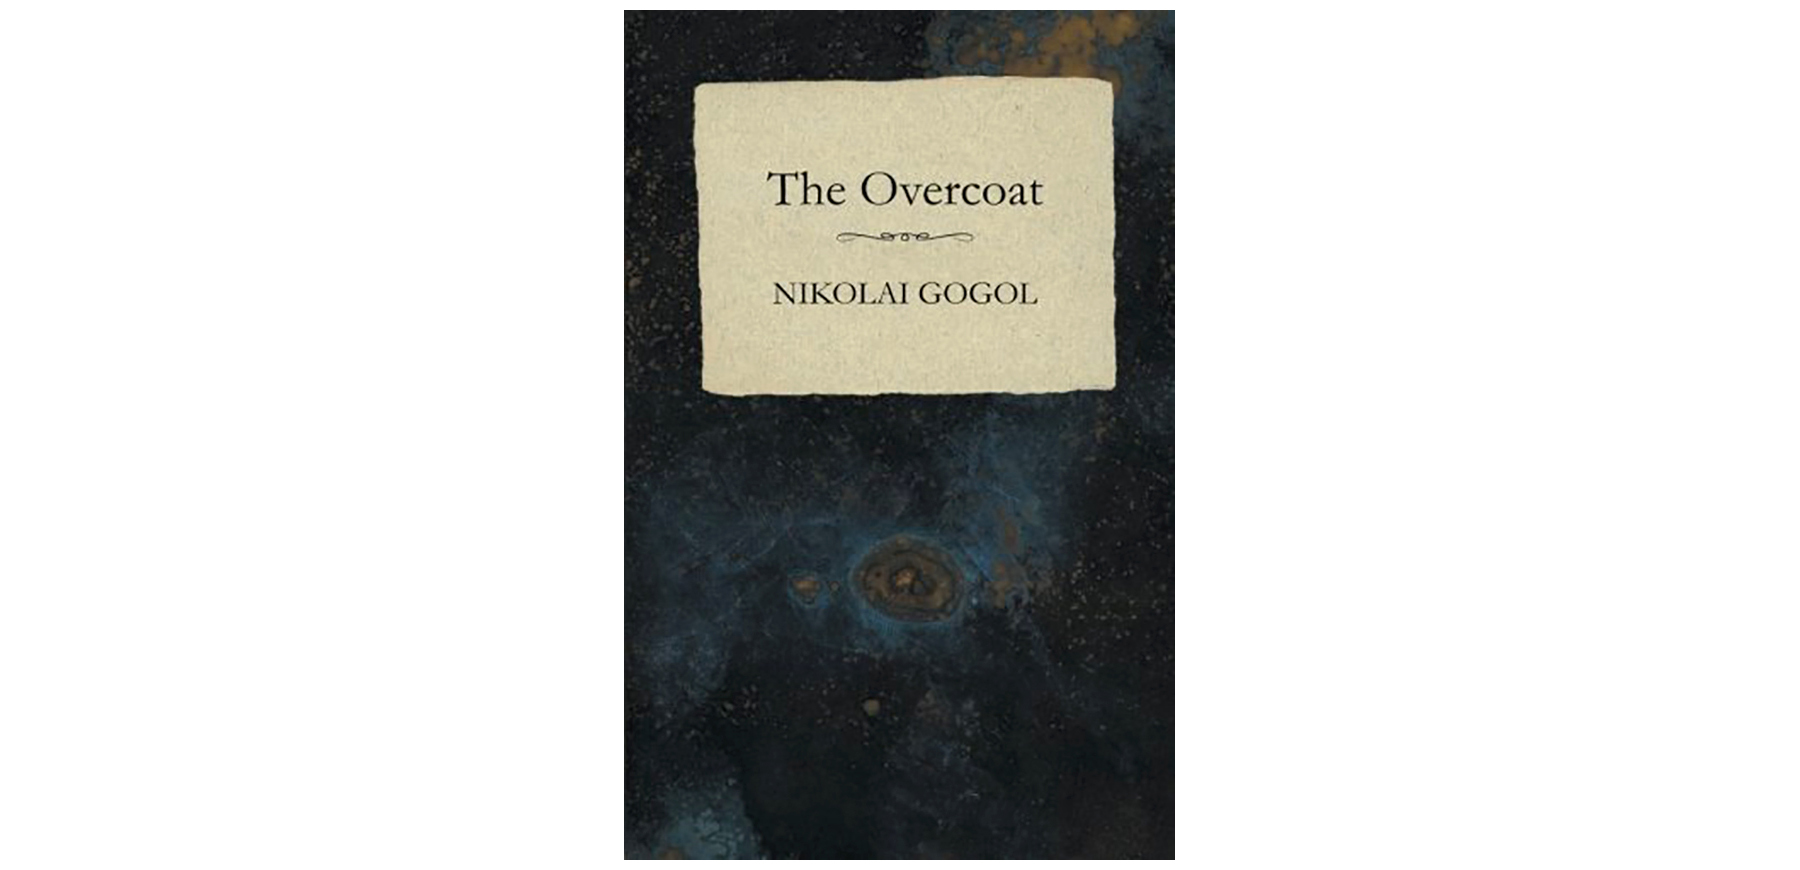 The Overcoat, by Nikolai Gogol